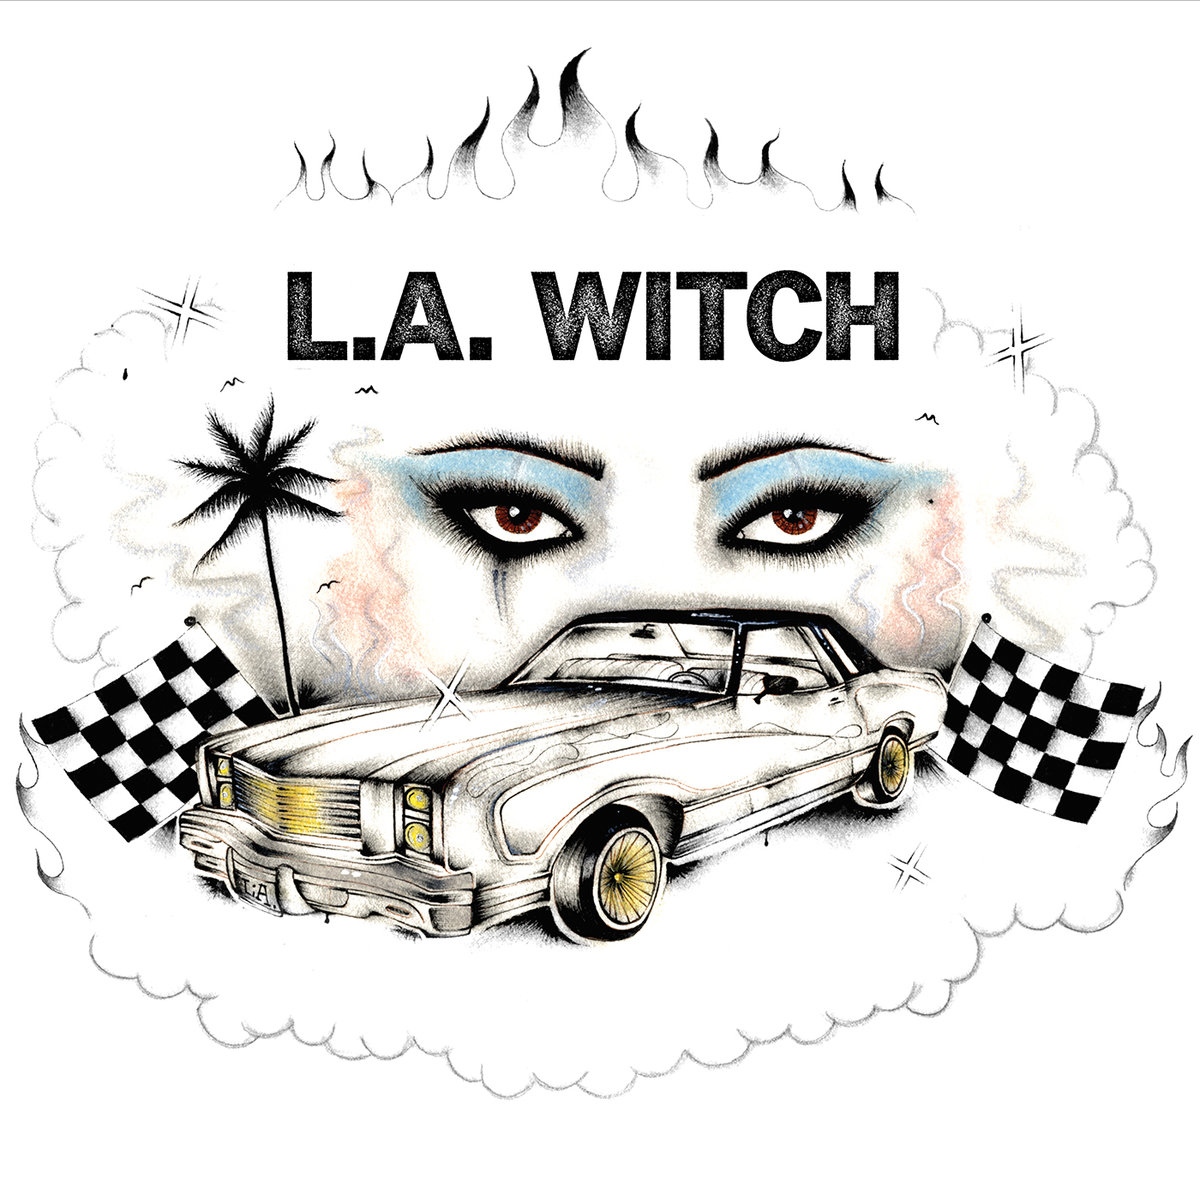 L.A. Witch - L.A. Witch   Dave Gardner   Suicide Squeeze Records